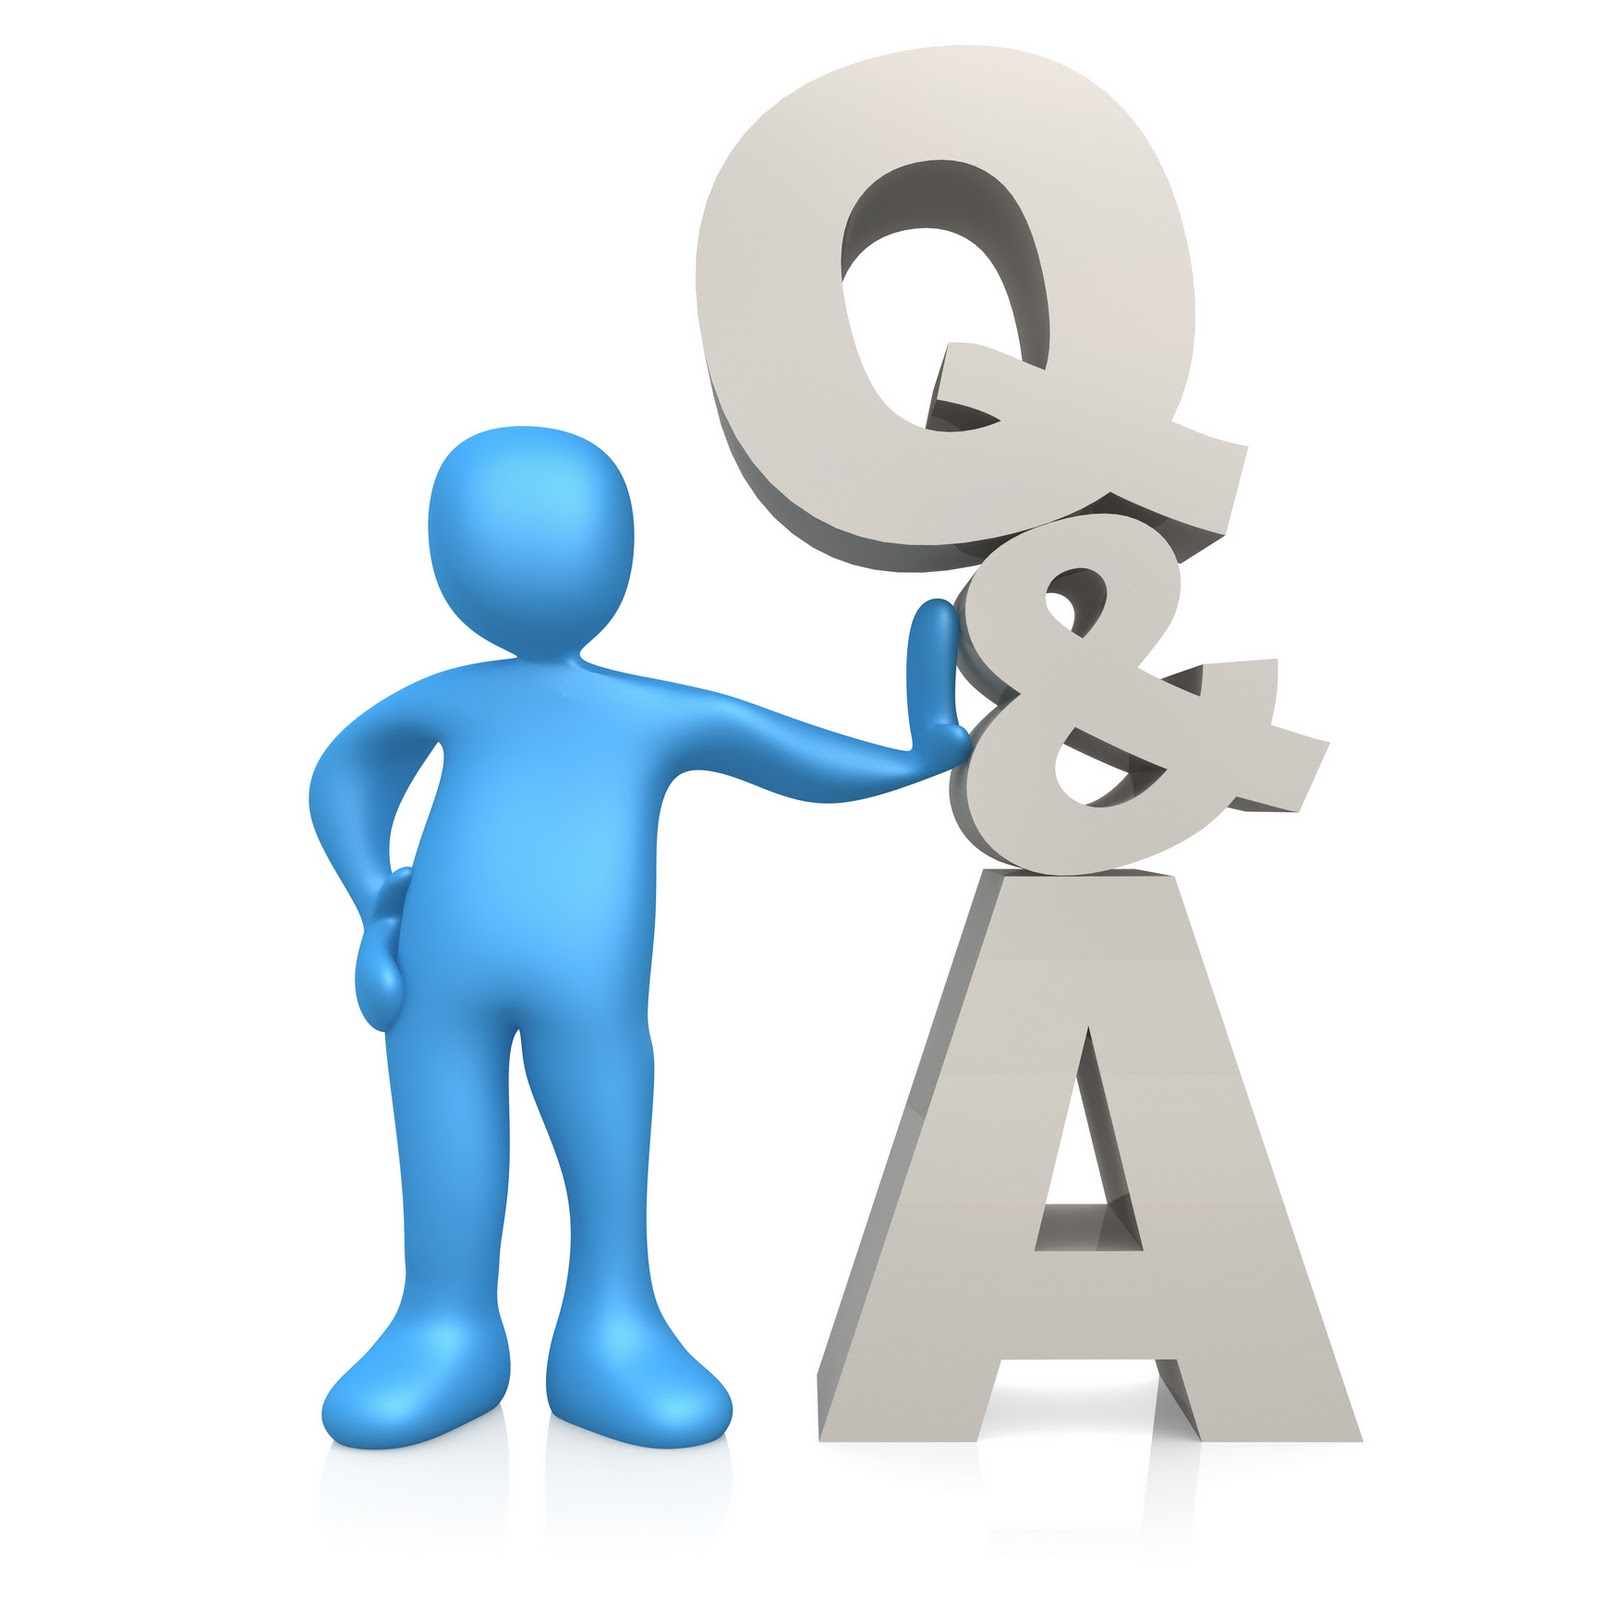 Faq frequently asked questions i love aba faq frequently asked questions 1betcityfo Gallery